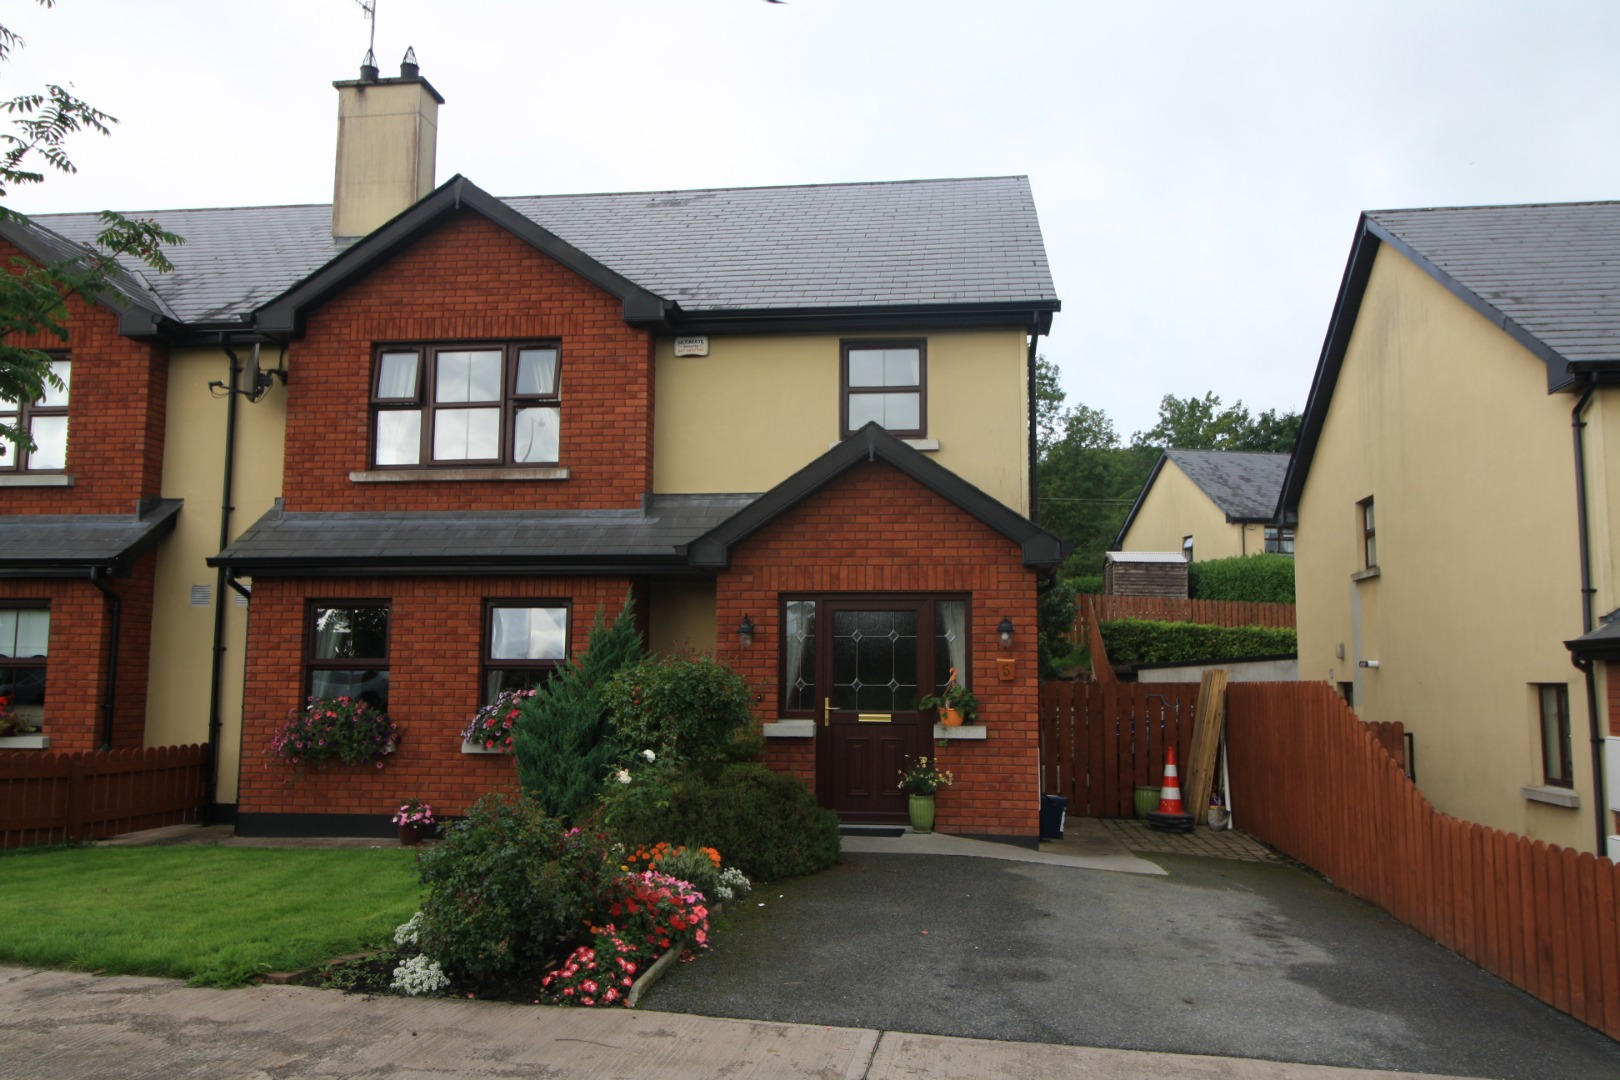 4 bed Semi-Detached for sale on No.5 Tobar an Radhairc, Corr an Tobair, Carrickmacross, Co. Monaghan - Property Image 1